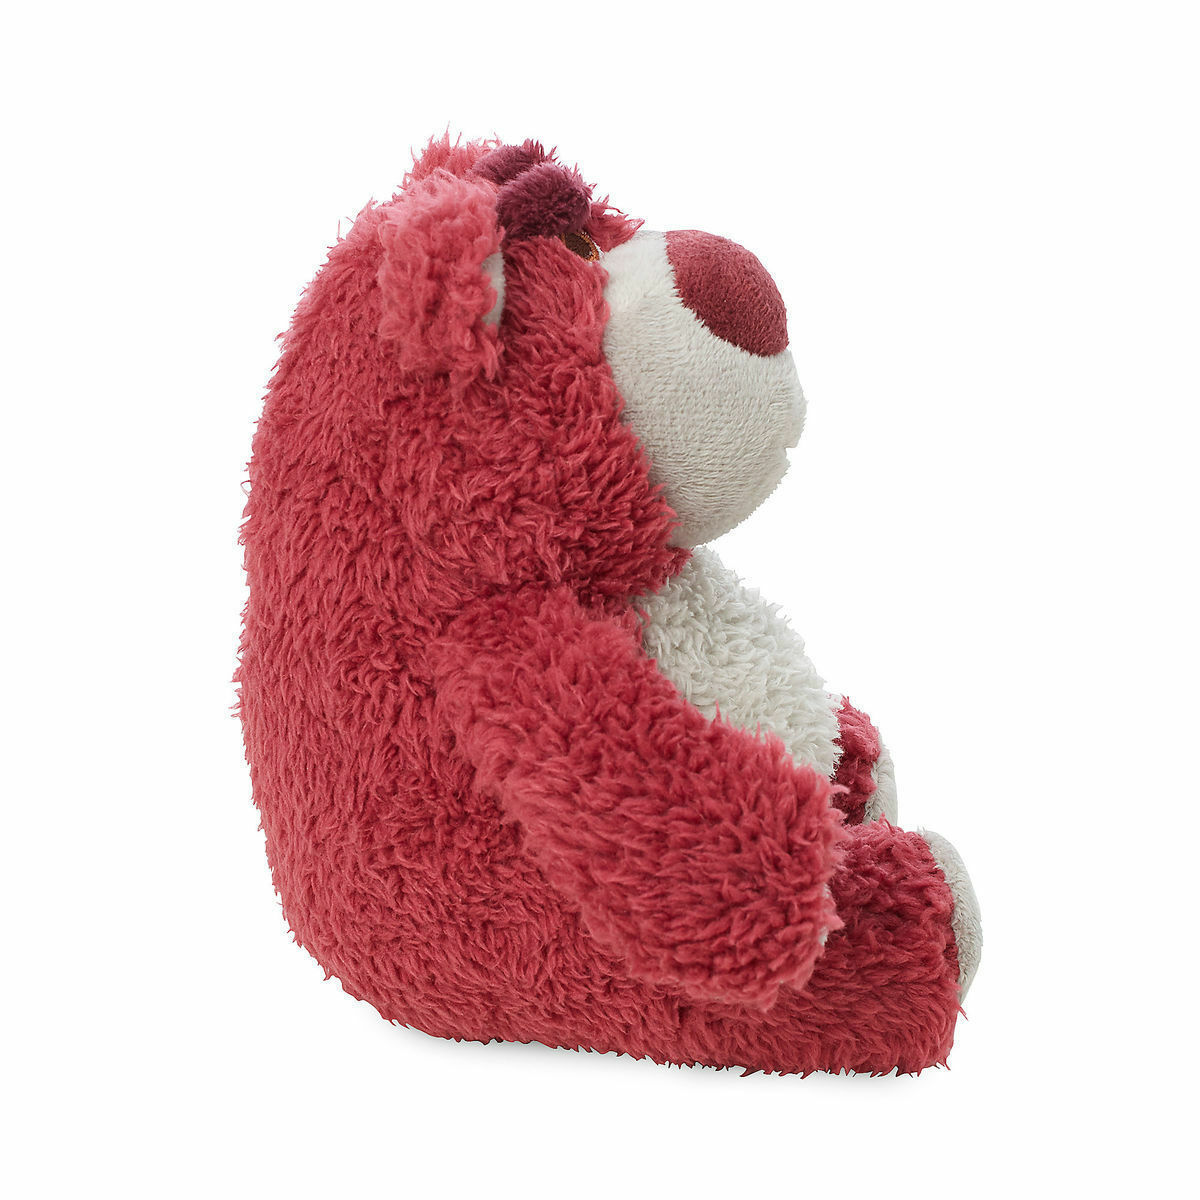 Disney Store Lotso Scented Plush Toy Story 3 Mini Bean Bag 7'' New with Tag